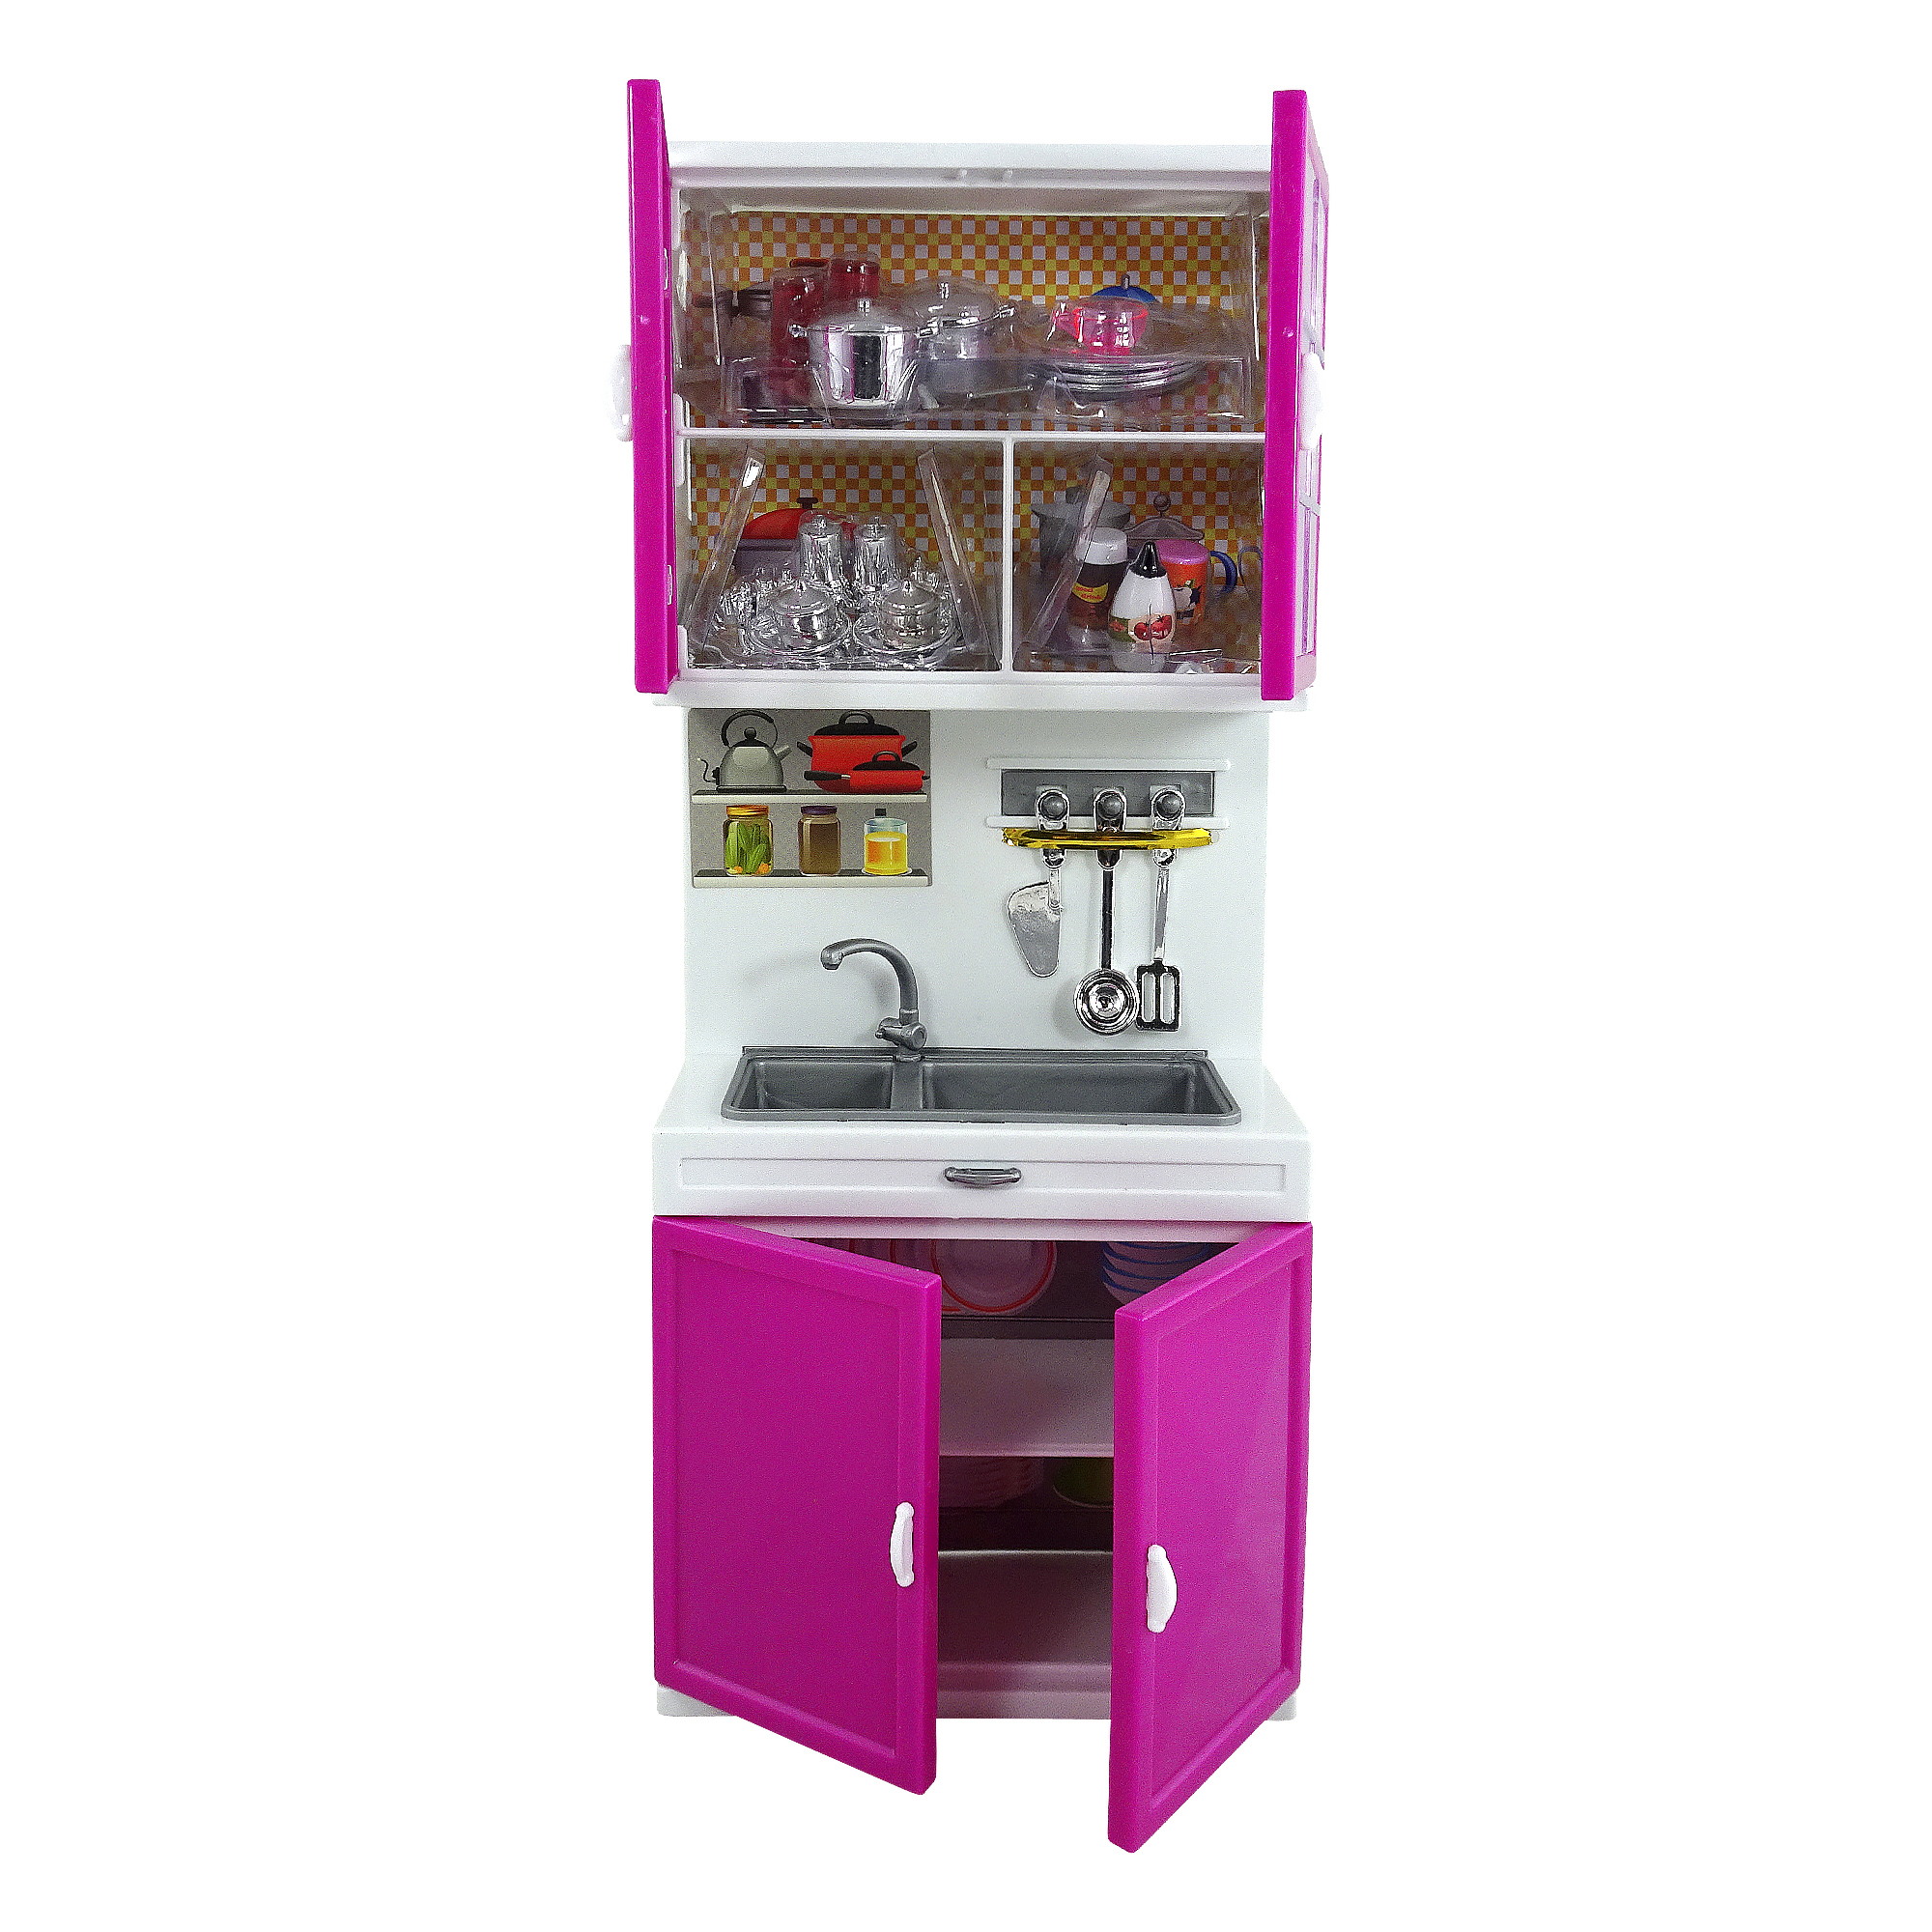 Toy Kitchen Play Set Sink And Cabinet Shelf Doll House Size Battery Operated With Lights And Sounds